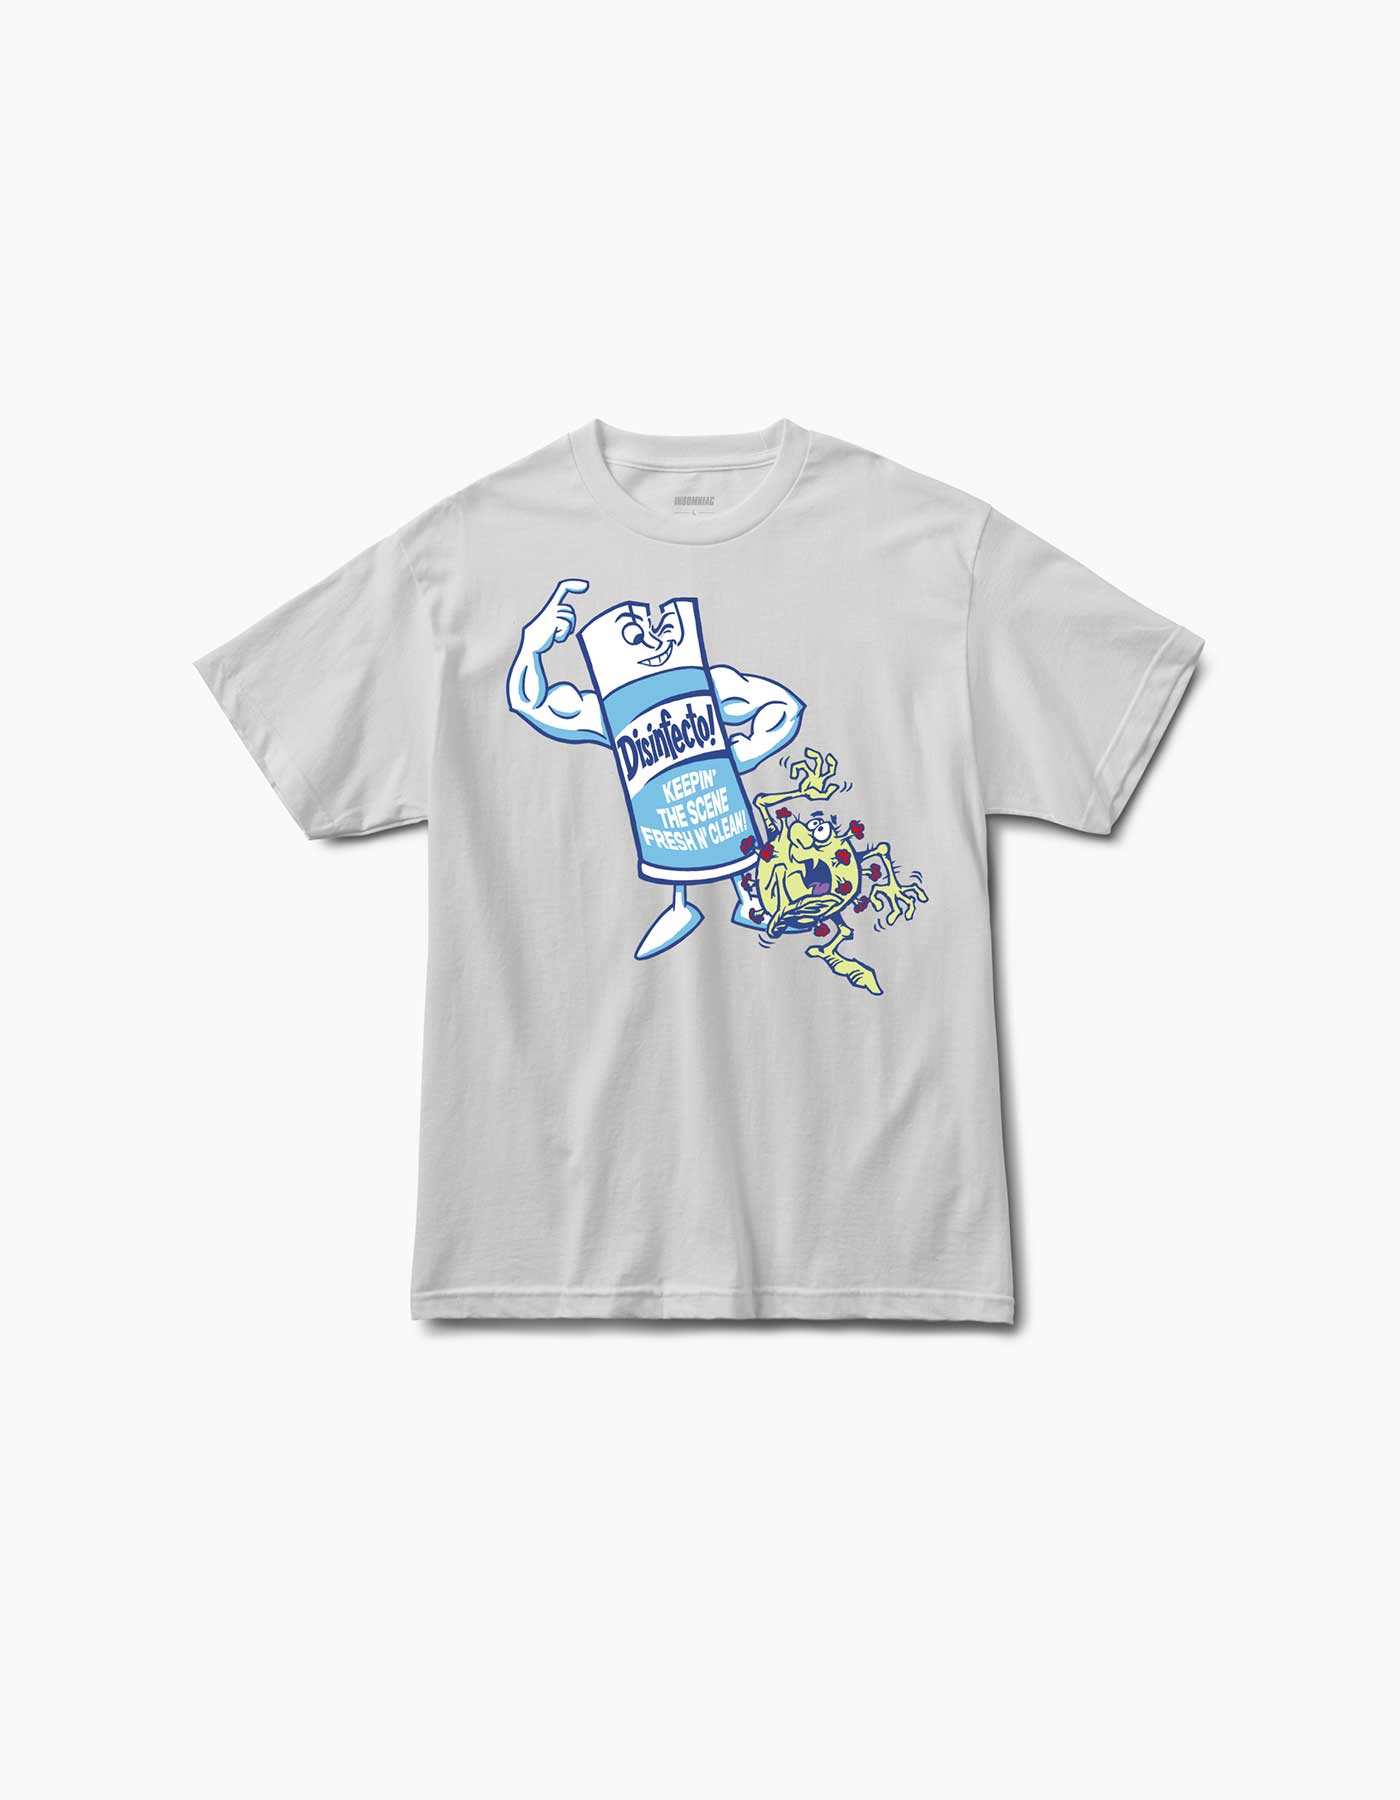 Disinfecto Can S/S Tee White